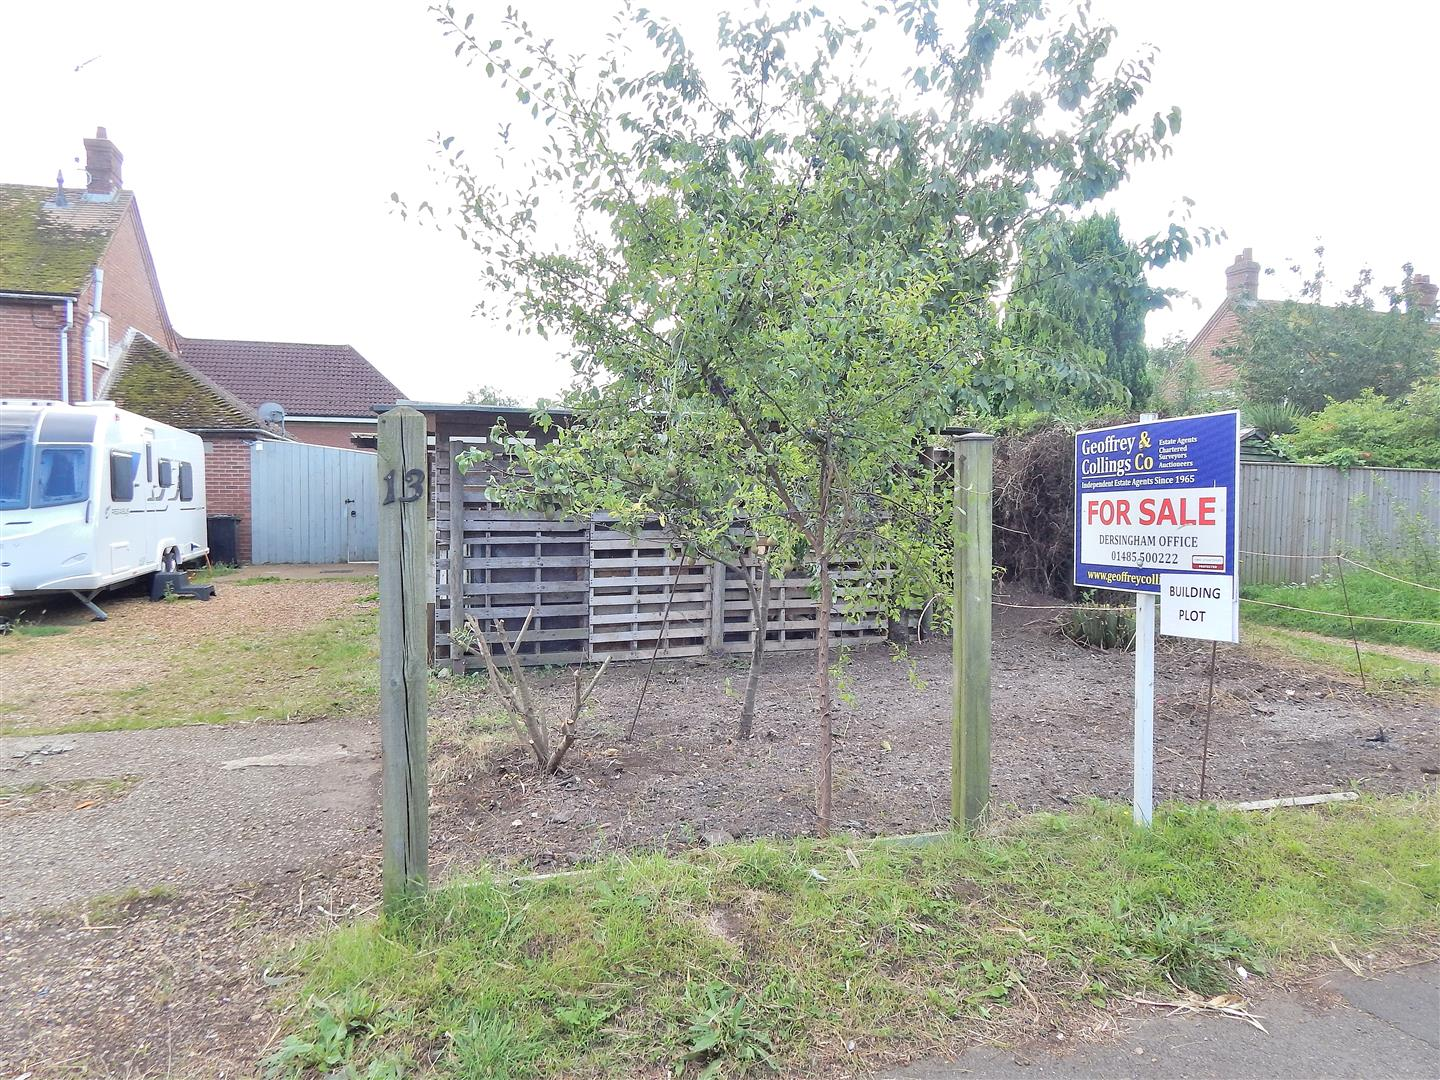 Plot for sale in Dersingham King's Lynn, PE31 6HN, PE31